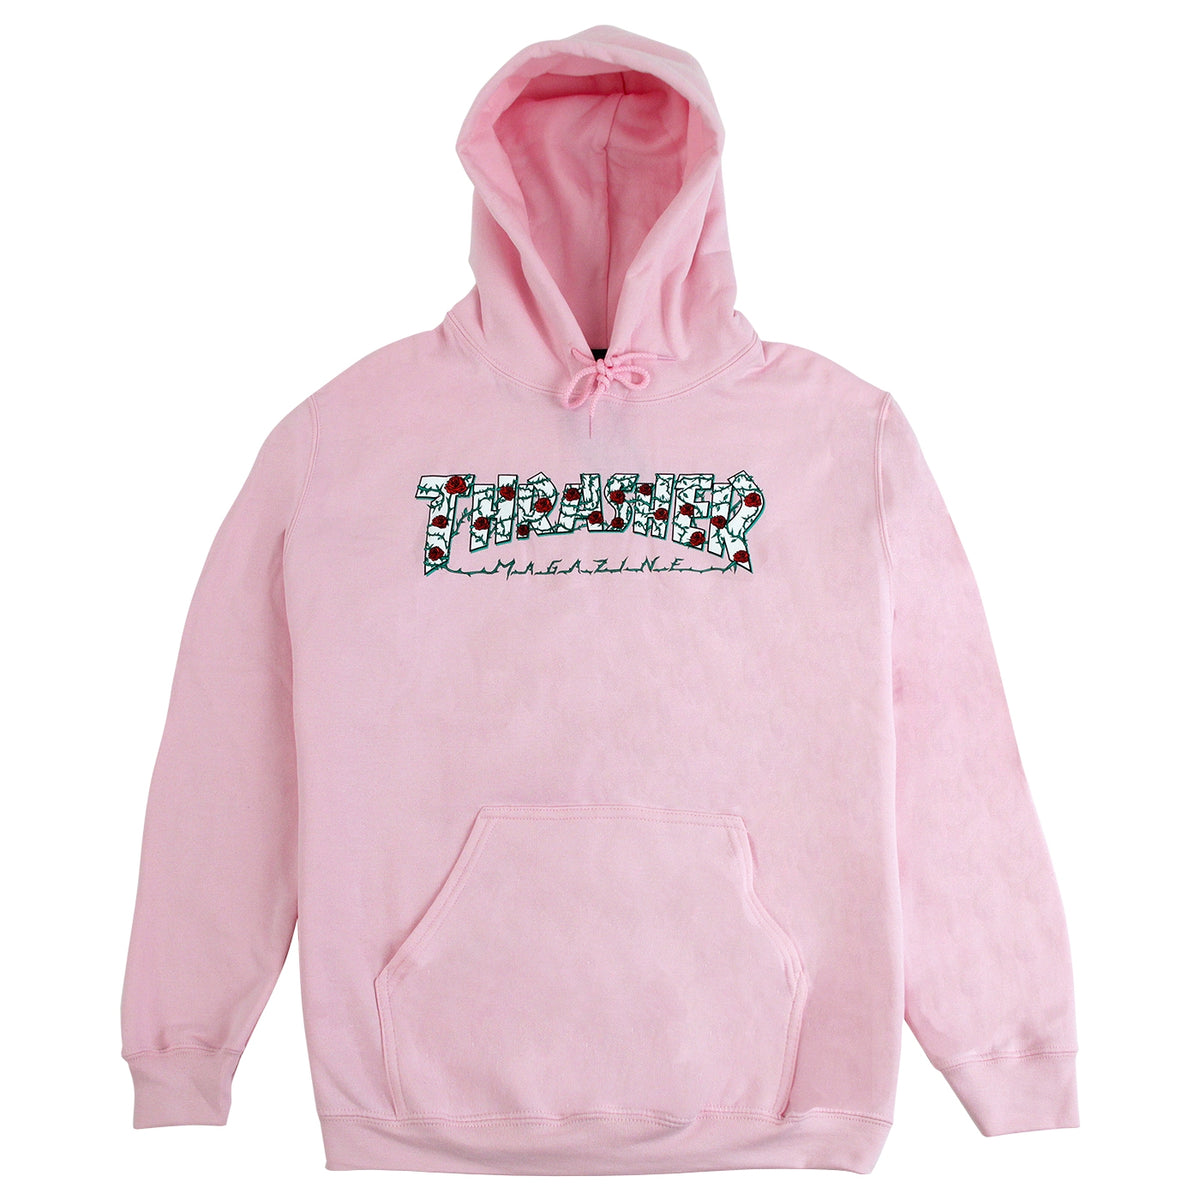 44117d4d3d33 Roses Hoodie in Light Pink by Thrasher